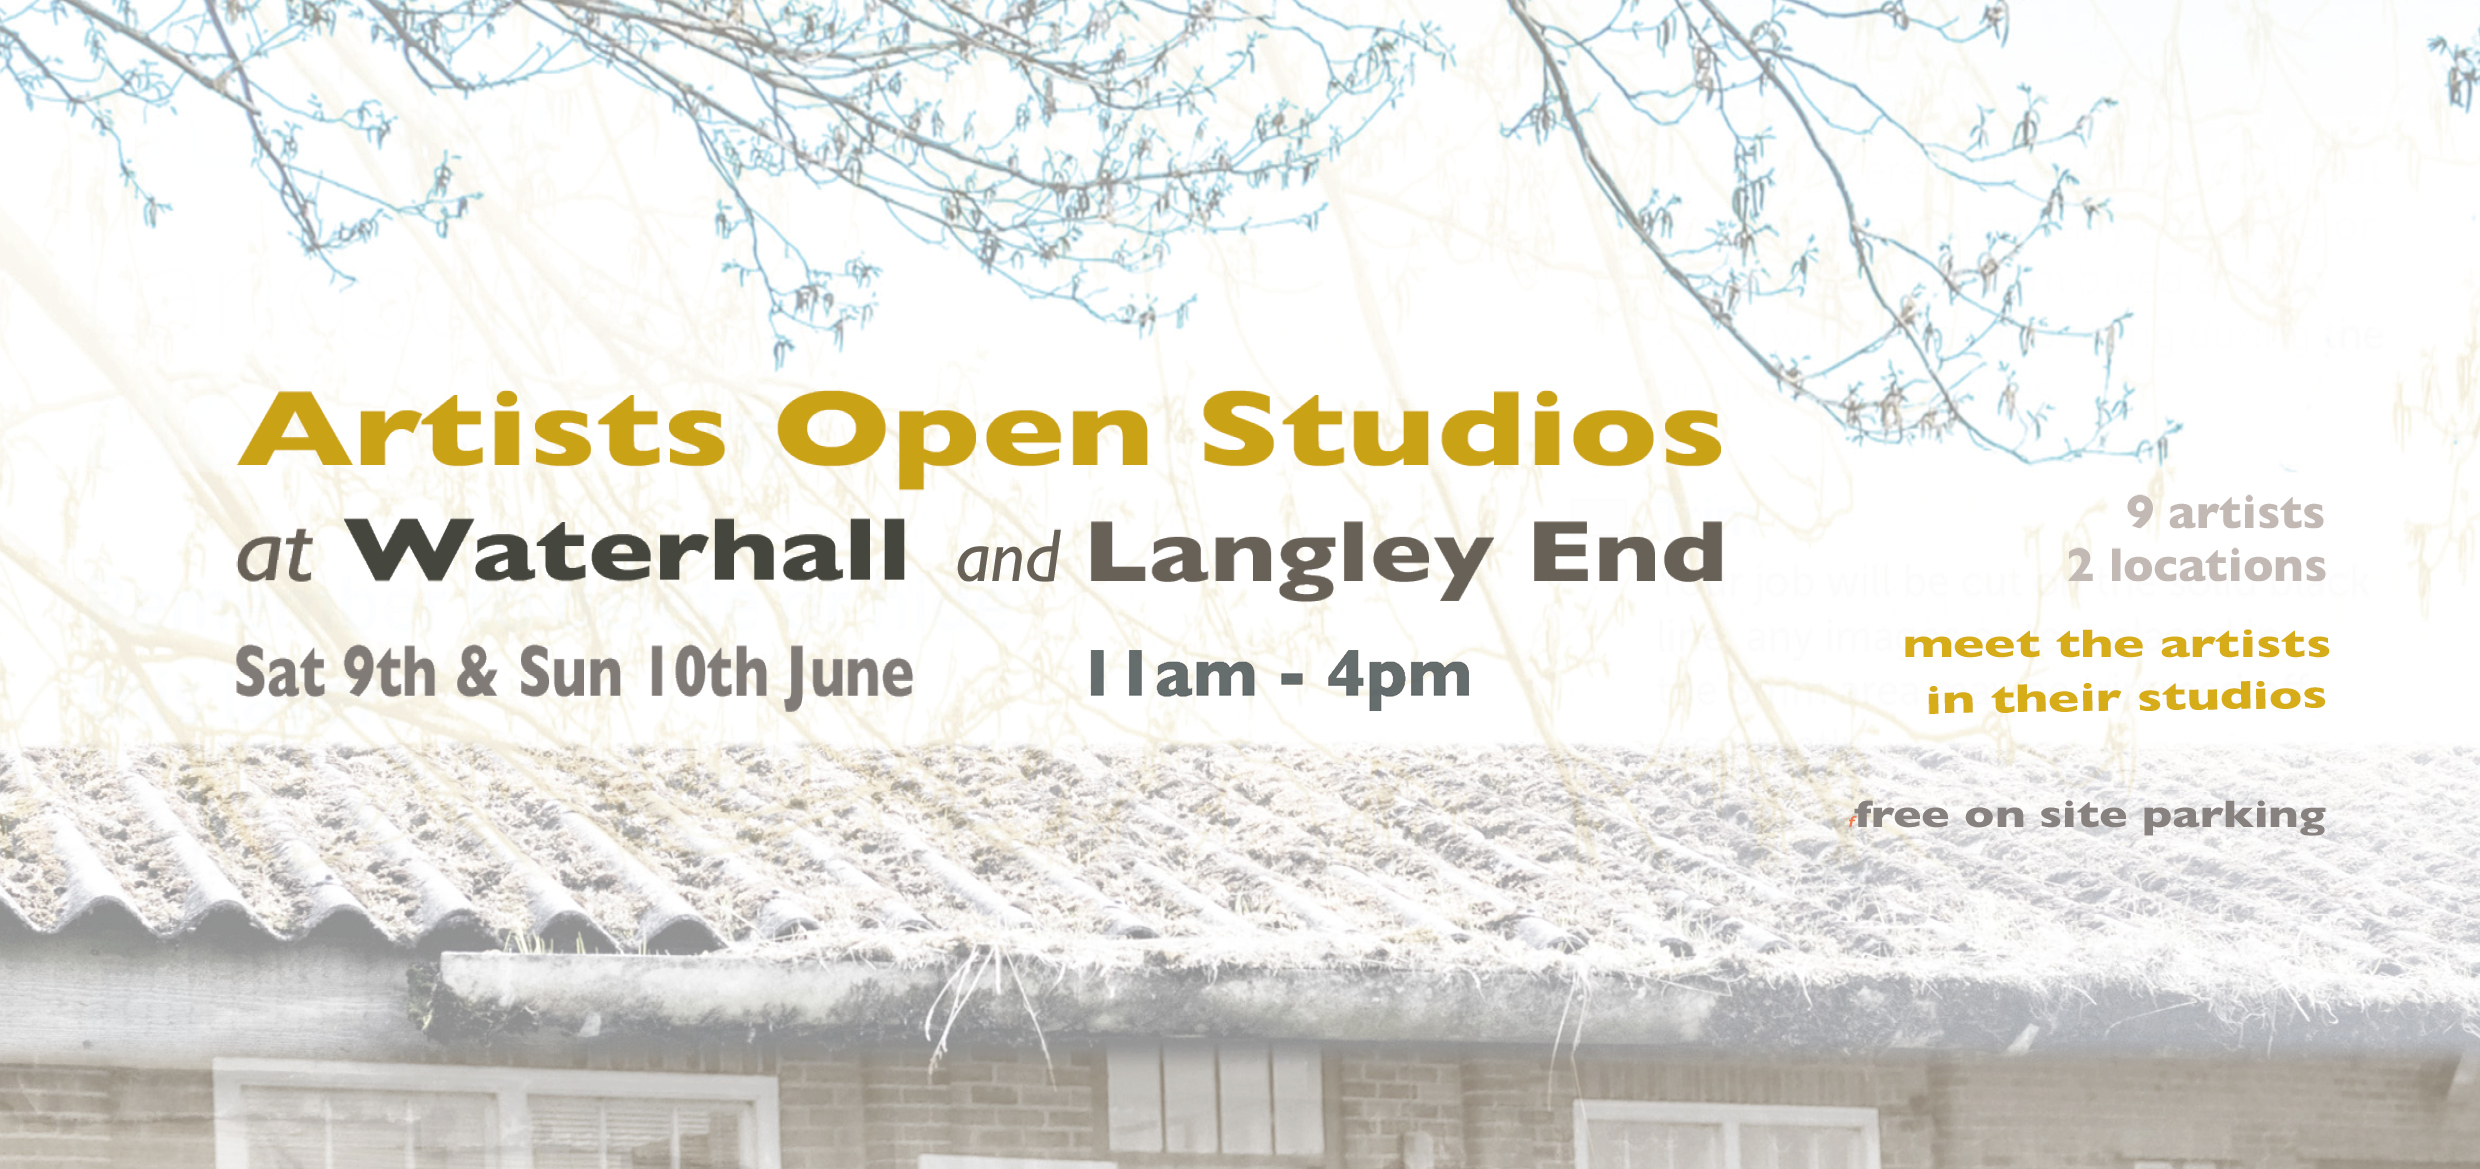 I'll also be opening my own studio at Waterhall Farm, in Whitwell along with 4 of my fellow artists on the same site on Saturday 9th June and Sunday 10th June.     The artists at Langley End Studios, just up the road, are also joining us and opening their studios on Saturday 9th June.     Times for both events are 11 am to 4pm.    more specific details and images to follow soon.